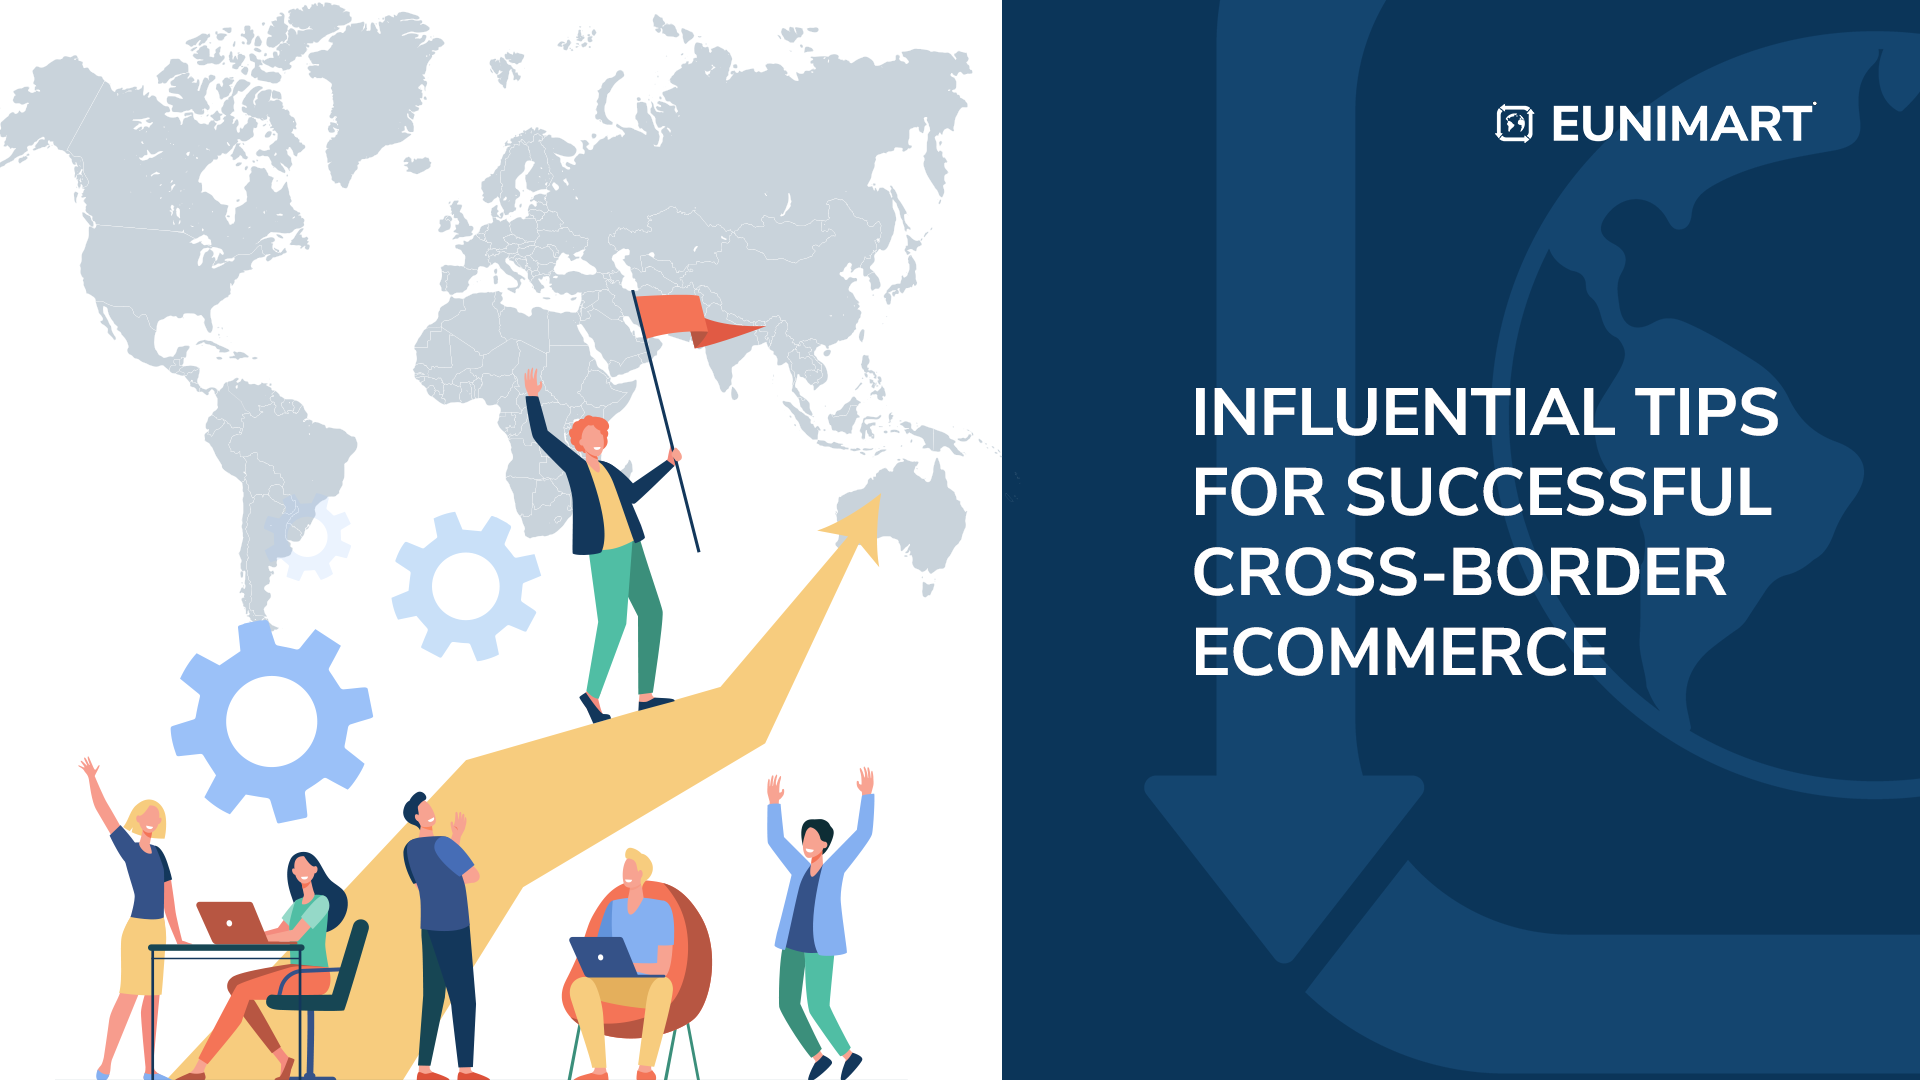 Influential Tips for Successful Cross-Border E-commerce